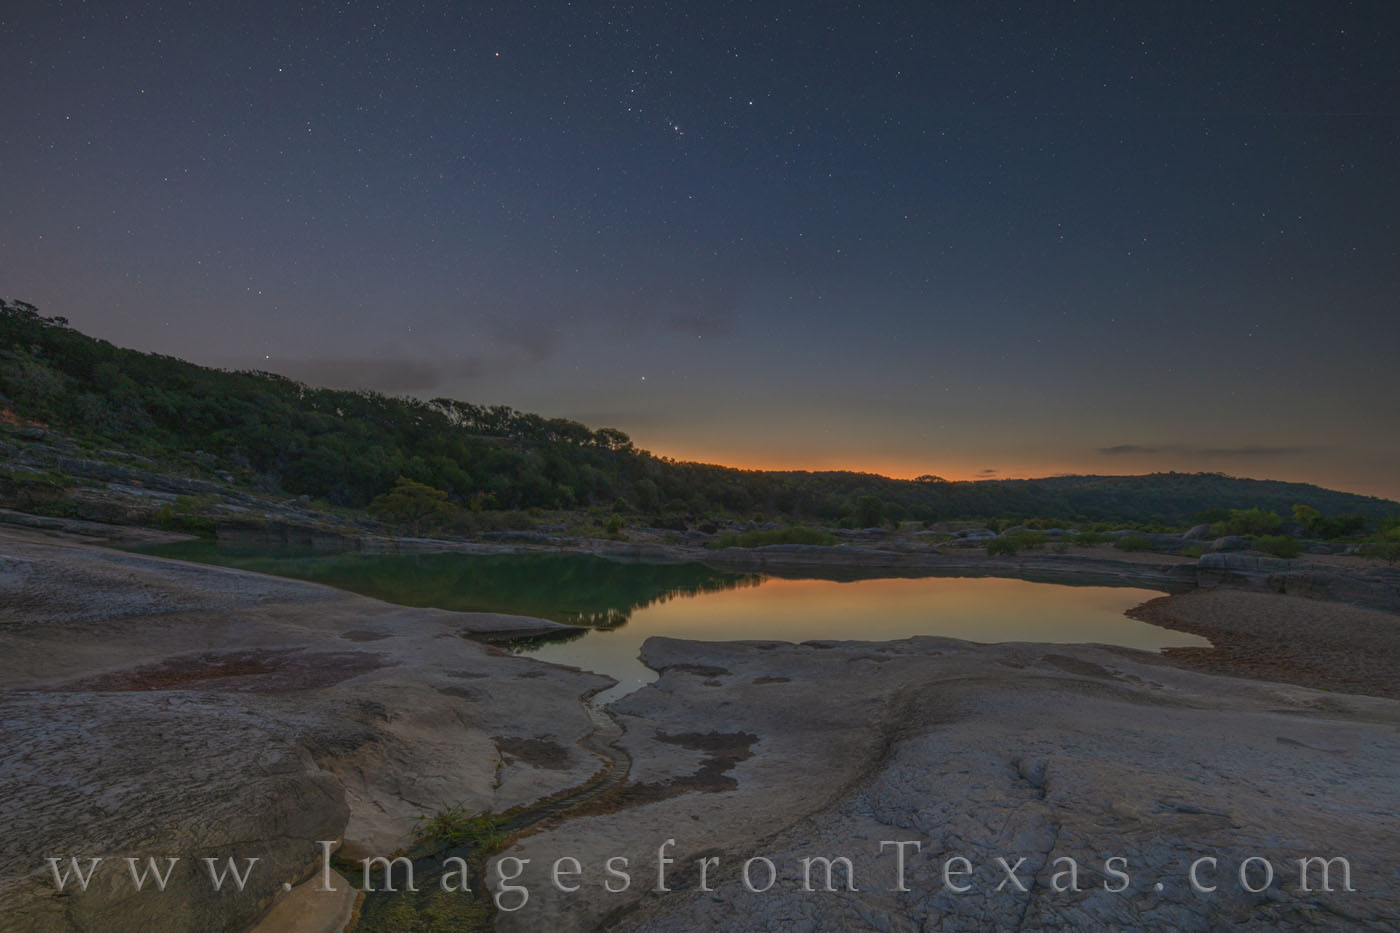 pedernales river, pedernales falls state park, sunrise, stars, morning, texas hill country, water, river, orion, photo